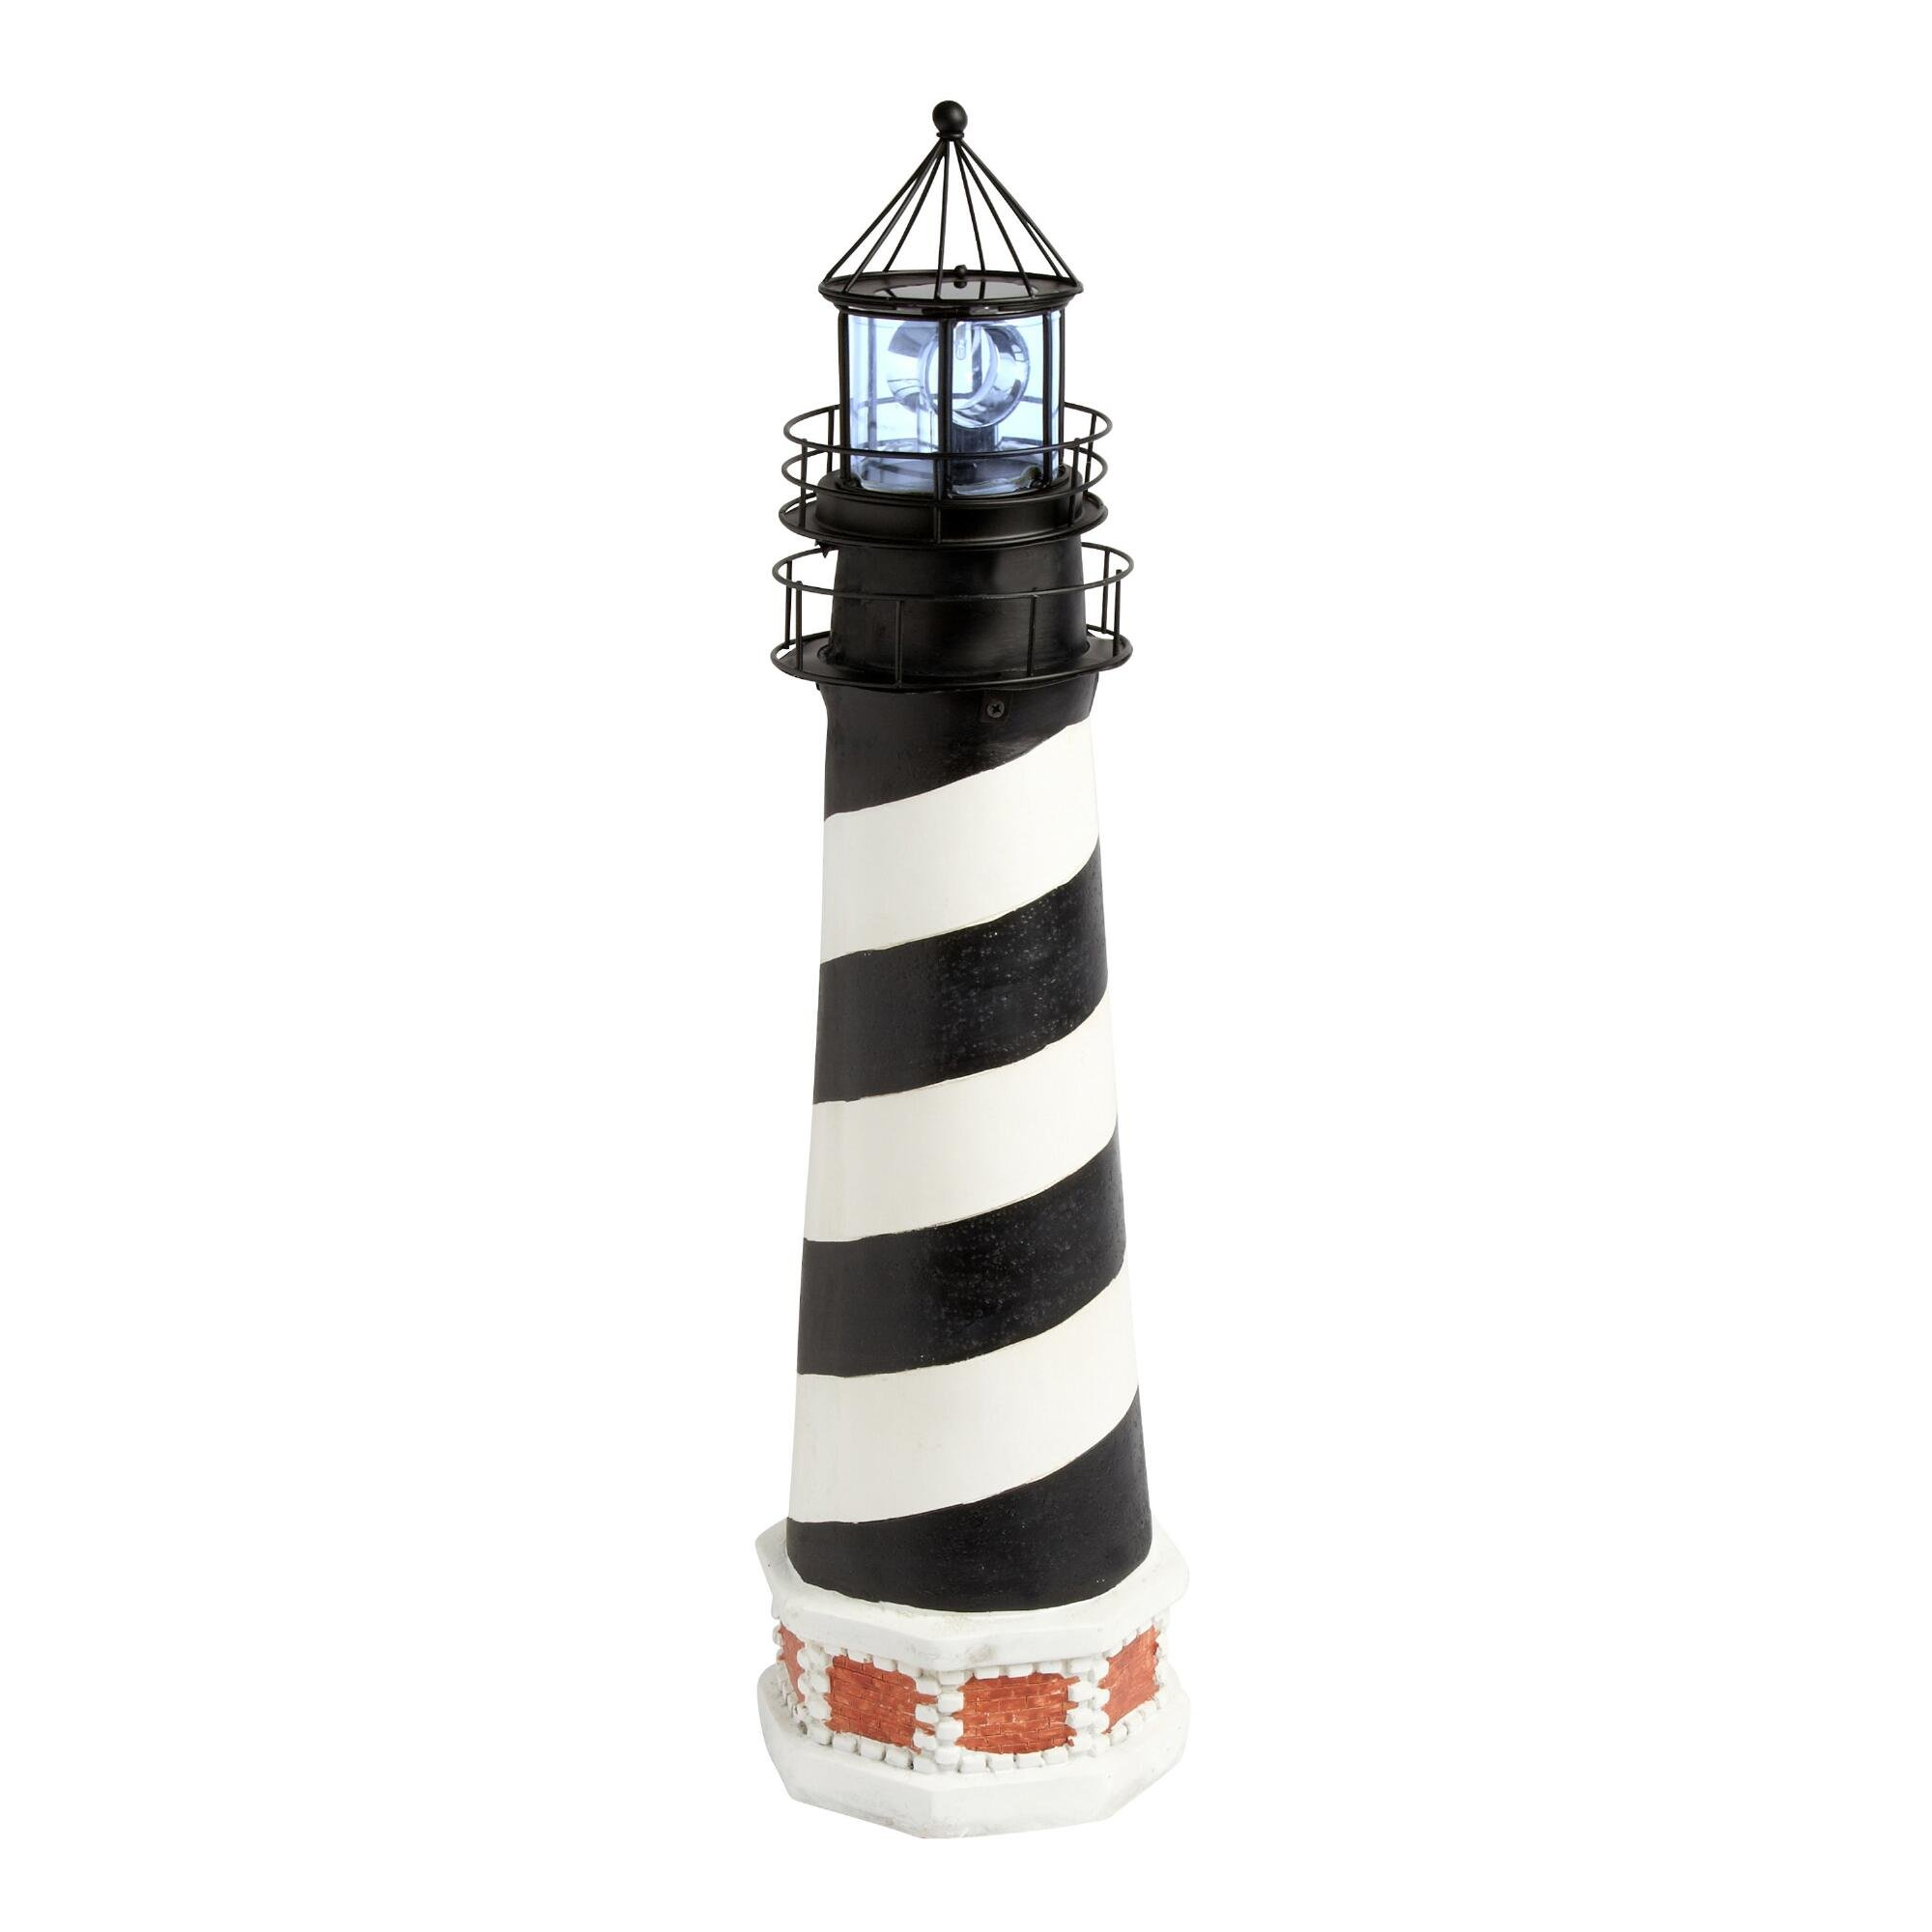 30.25'' Cape Hatteras Style Solar Lighthouse with Rotating Lighted Beacon